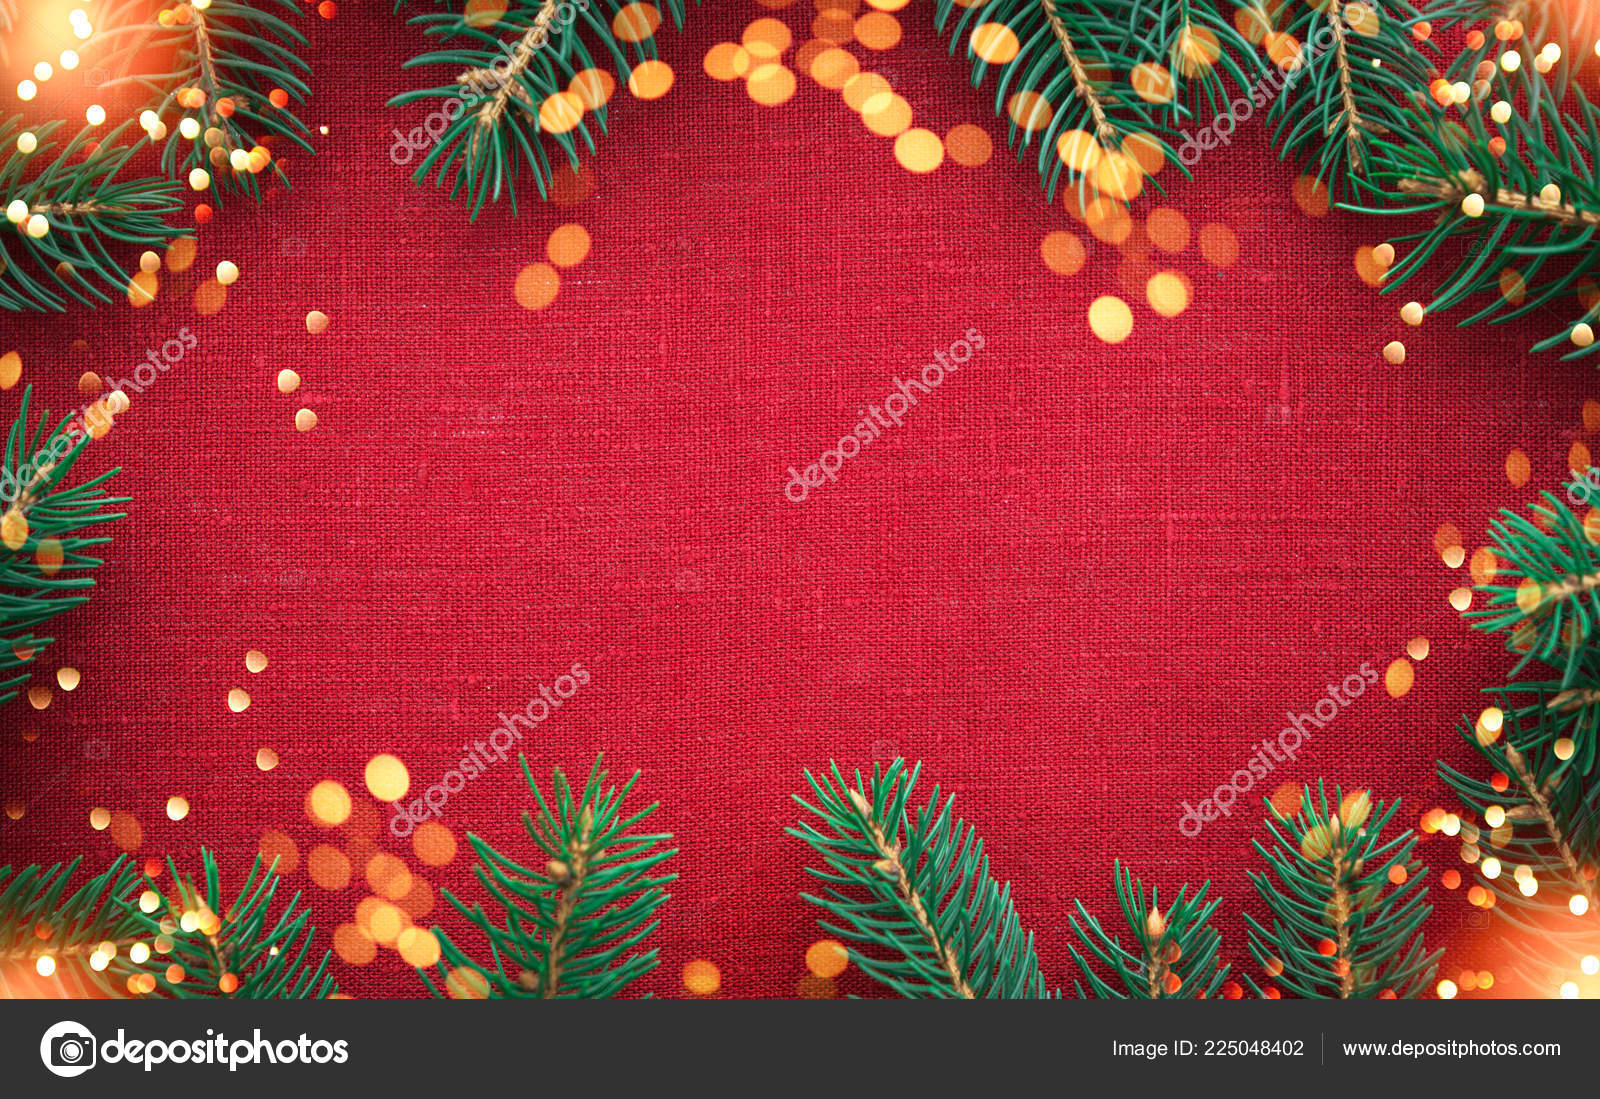 Christmas Frame Christmas Tree Ornaments Red Canvas Background